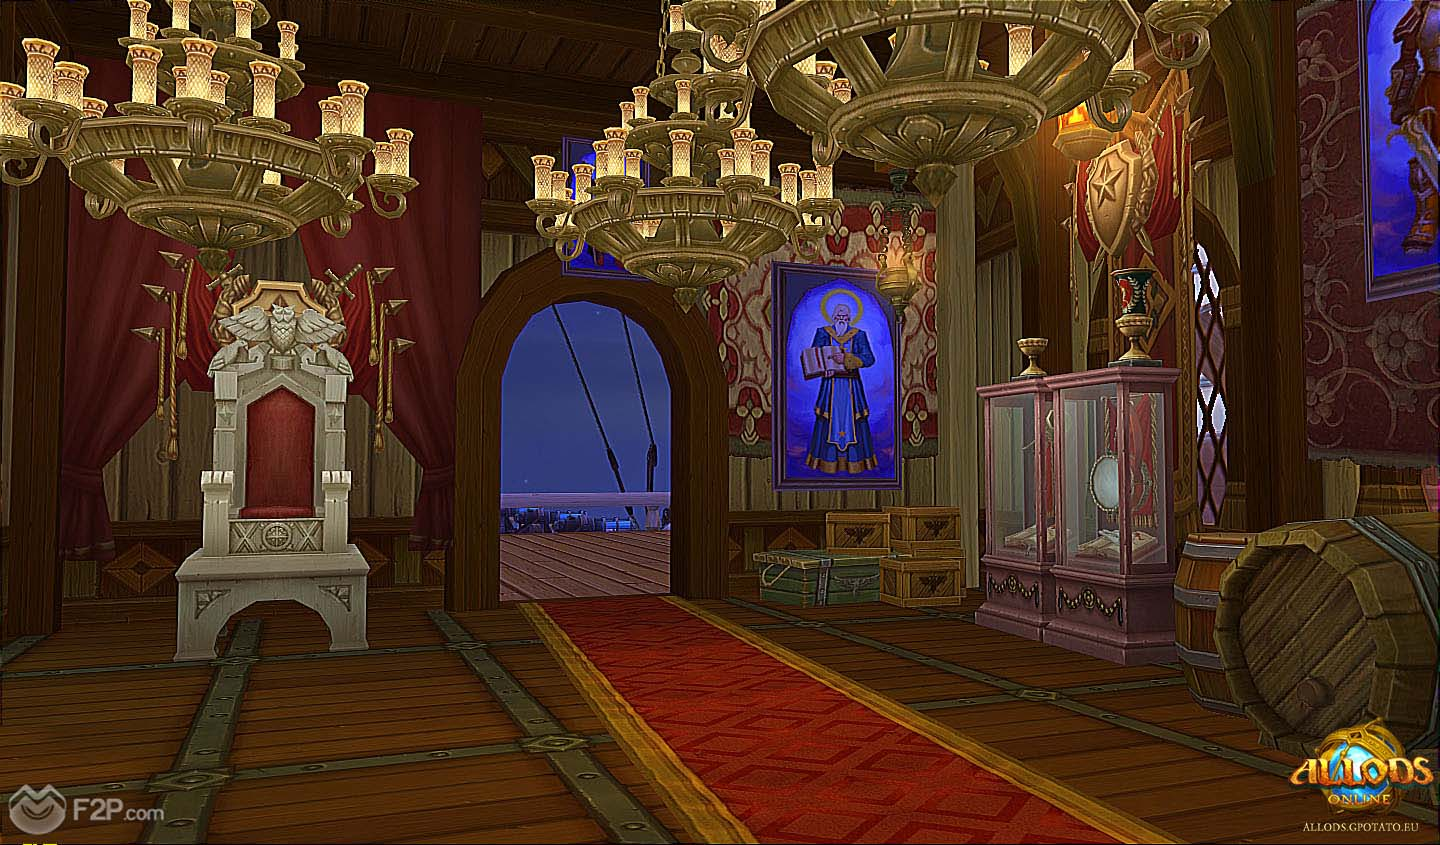 Click image for larger version. Name:	Allods-Screenshot-Astral-Ship-Customisation-Throne-Room copia_1.jpg Views:	148 Size:	222.9 KB ID:	10756